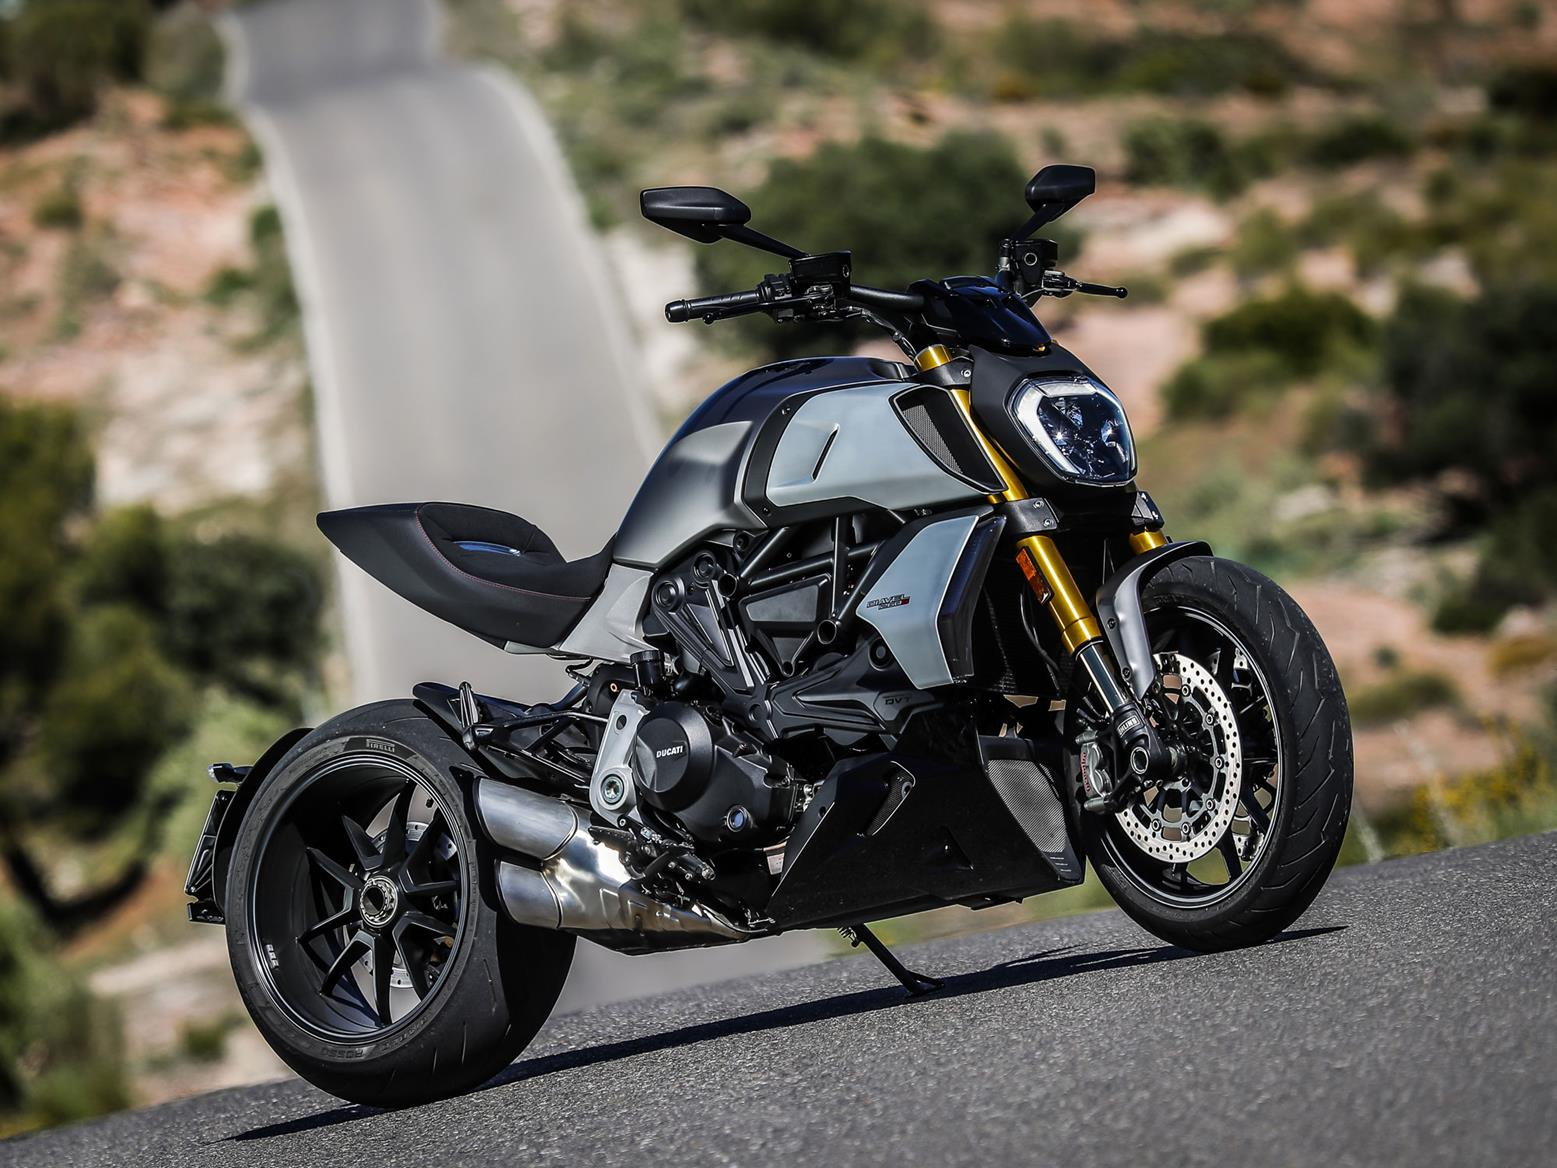 The Ducati Diavel is a beautifully built machine